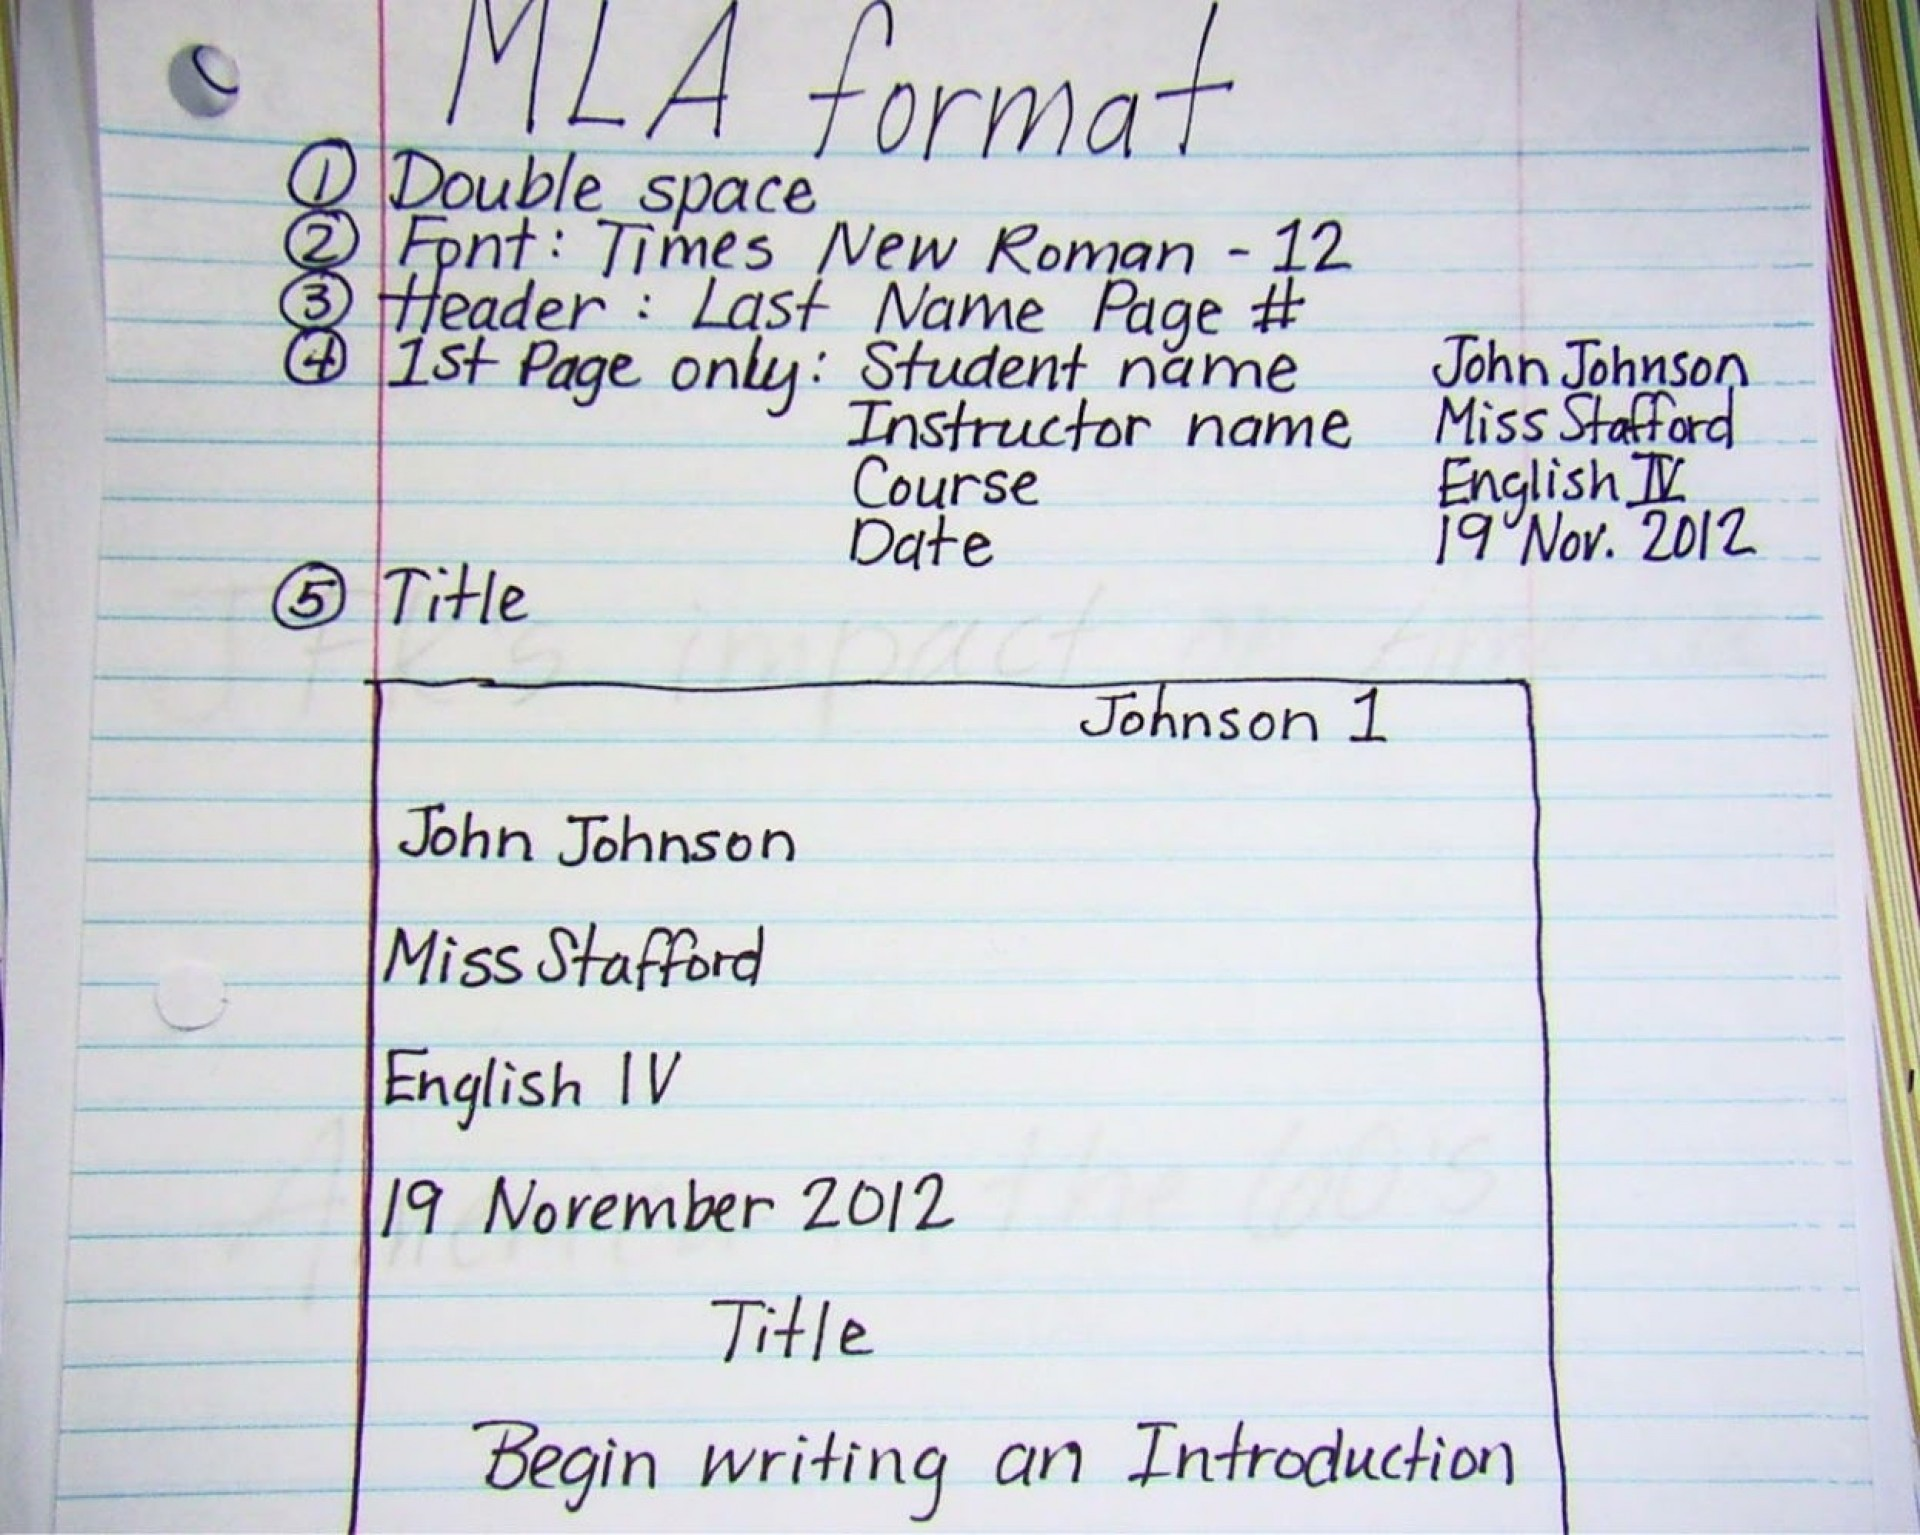 020 Mla2bnotes How To Write Research Paper Introduction Fascinating A Mla An For 1920